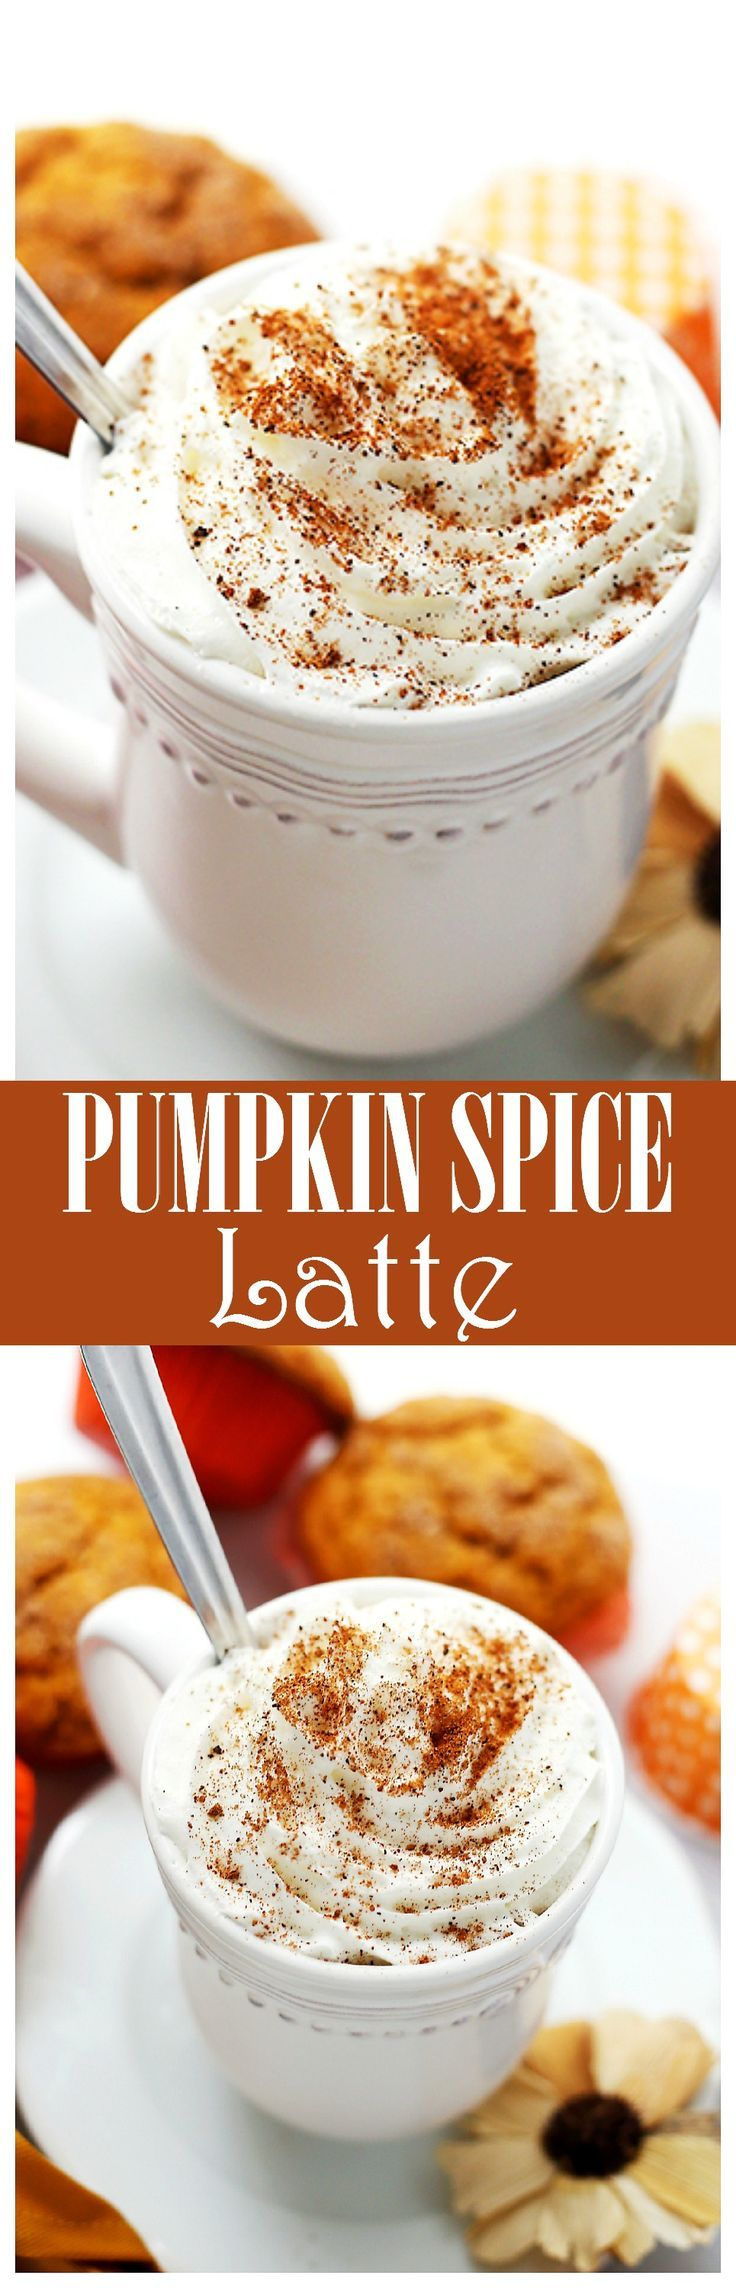 35 Best Minuman Images On Pinterest Alcoholic Drinks Cooking Food Liquid Lokal Es Puter Durian Pumpkin Spice Latte Make Your Own Starbucks At Home So Easy